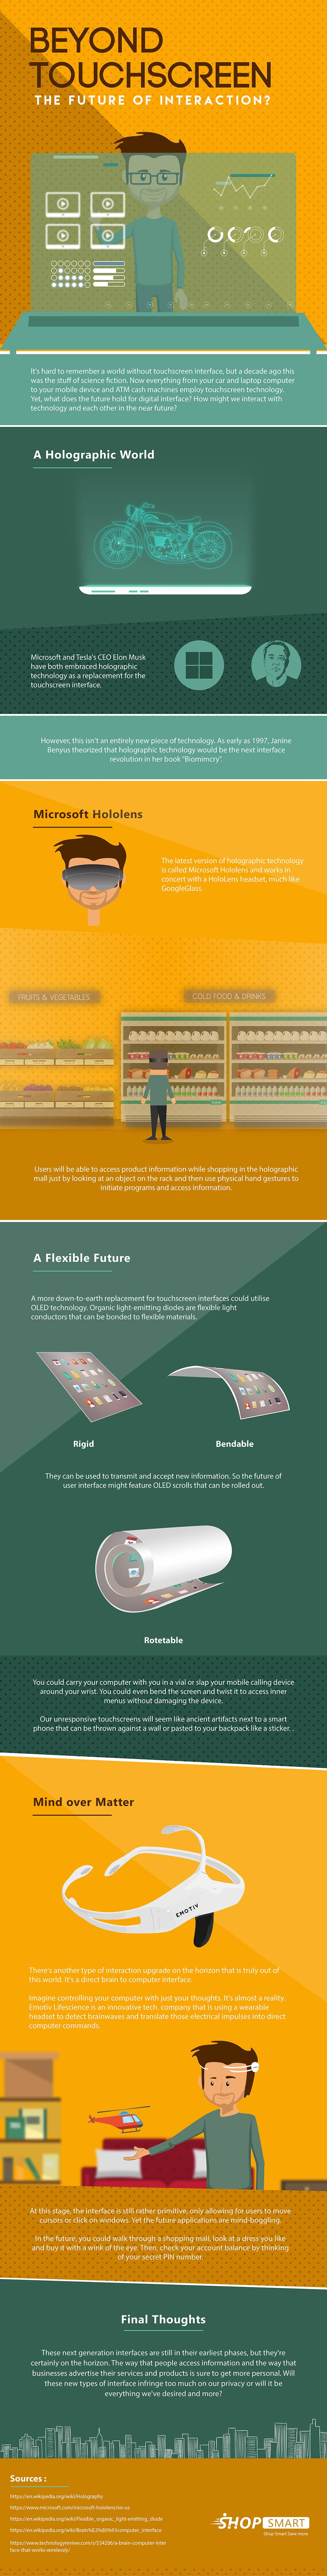 beyond-touchscreens-future-interaction-infographic-tech-gadgets-electronics-design